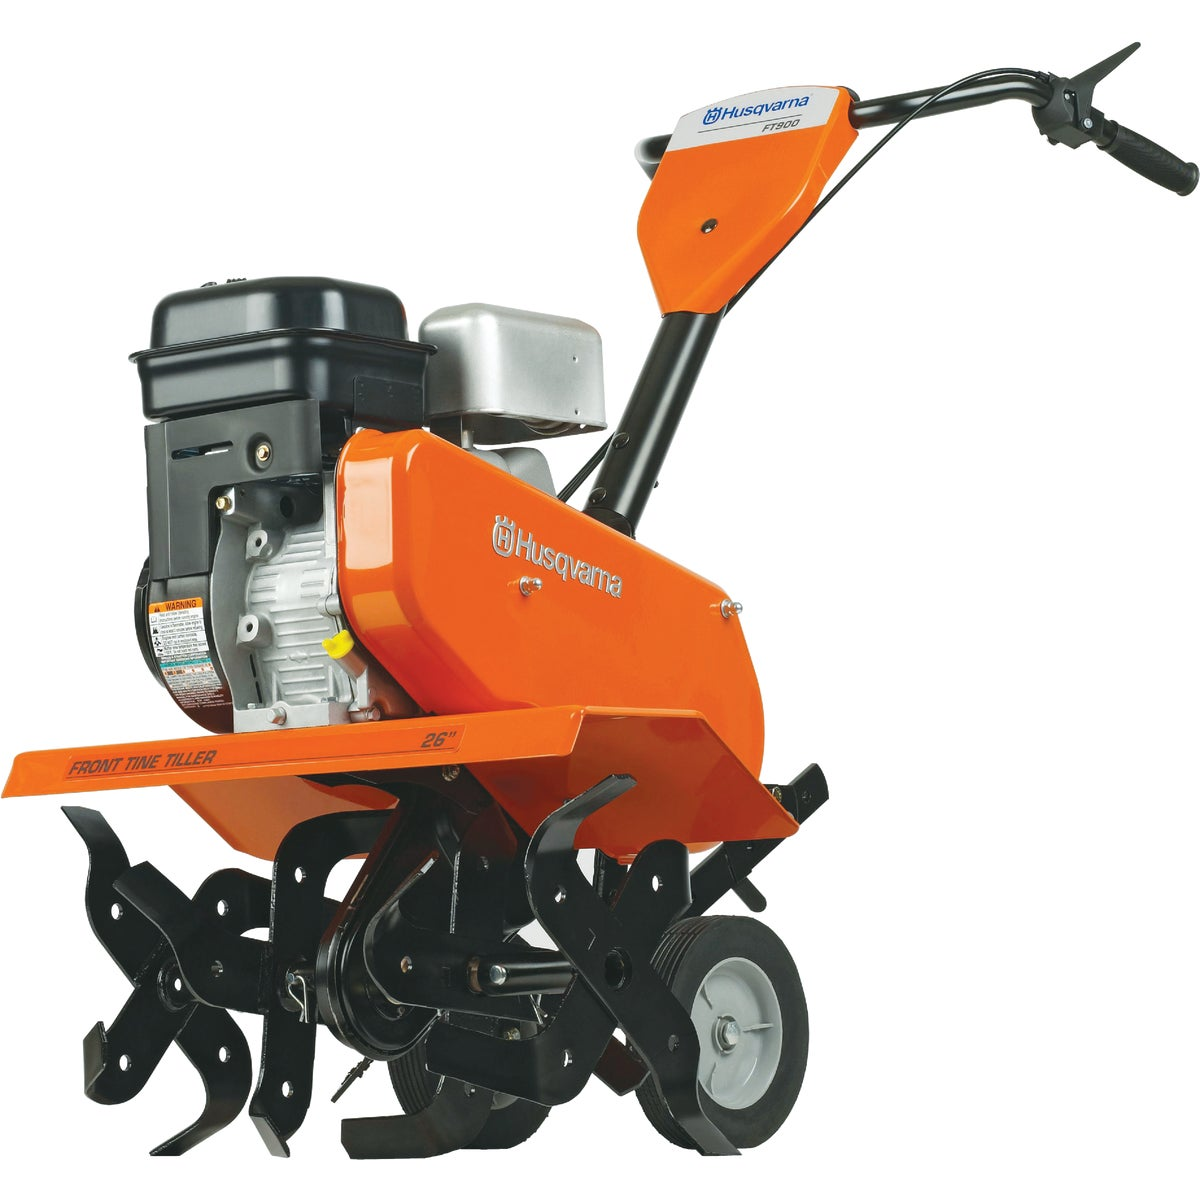 "26"" FRONT TINE TILLER - 960830009 by Husqvarna Outdoor"